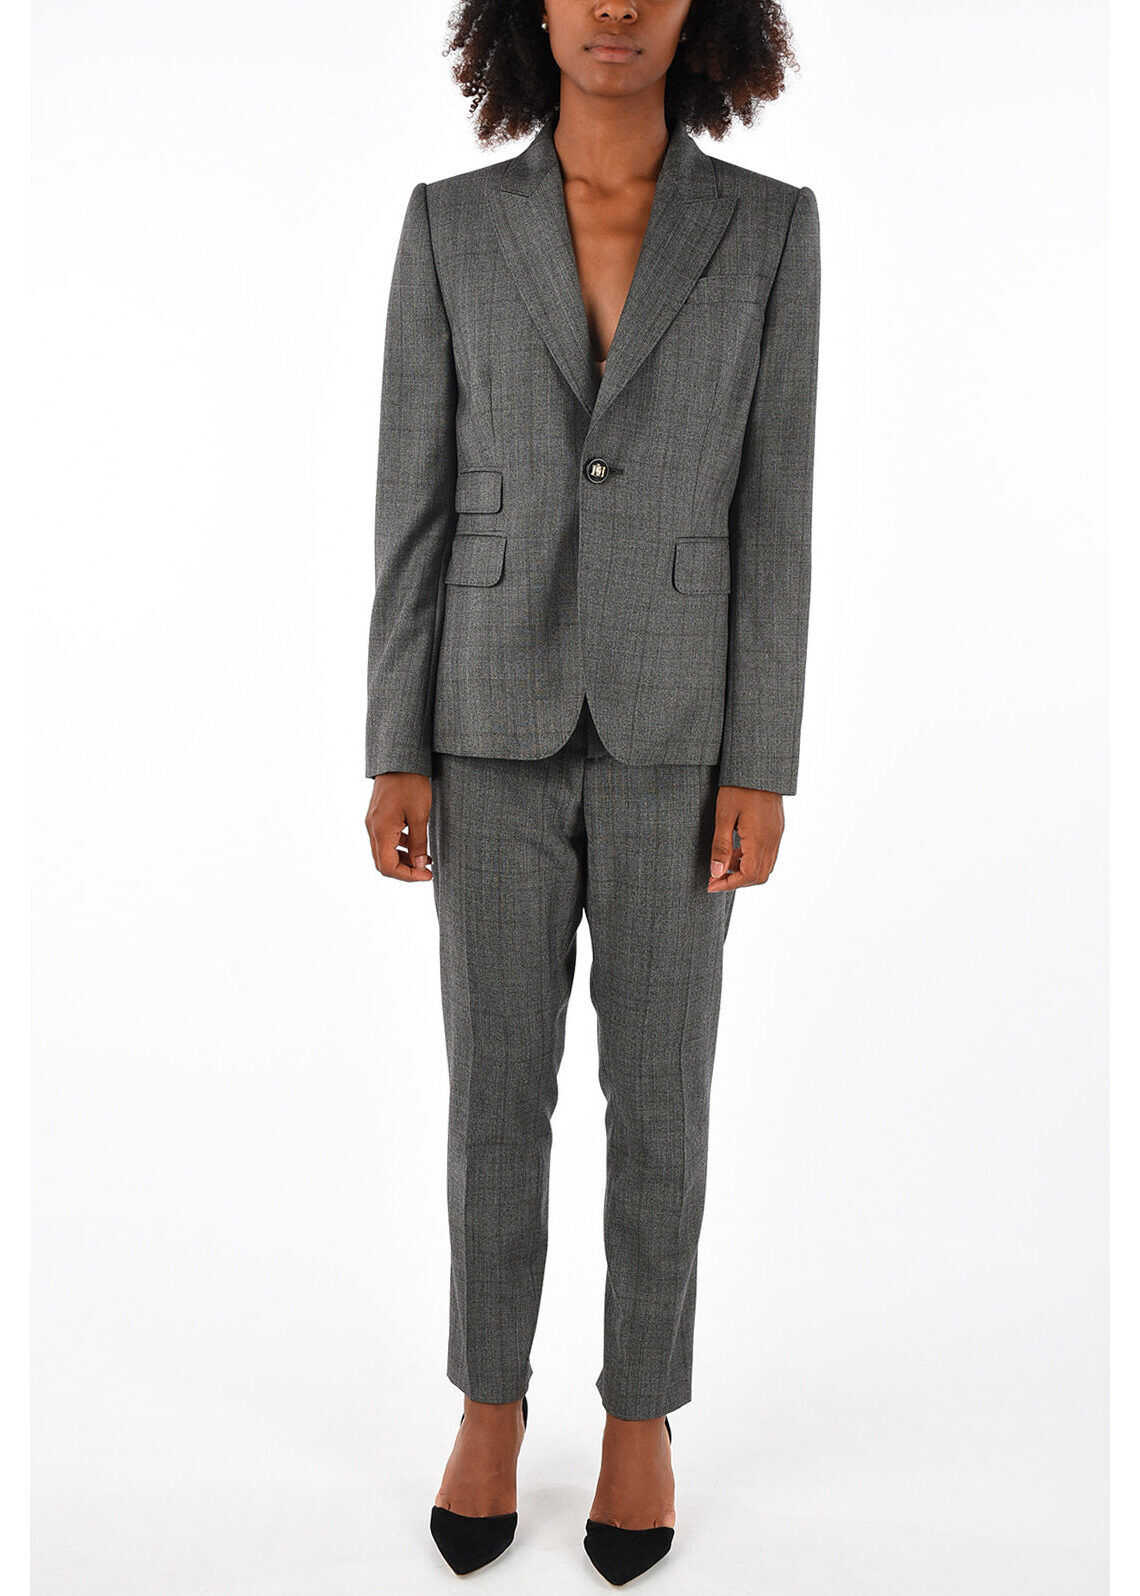 DSQUARED2 POWER Suit with Pants and Skirt GRAY